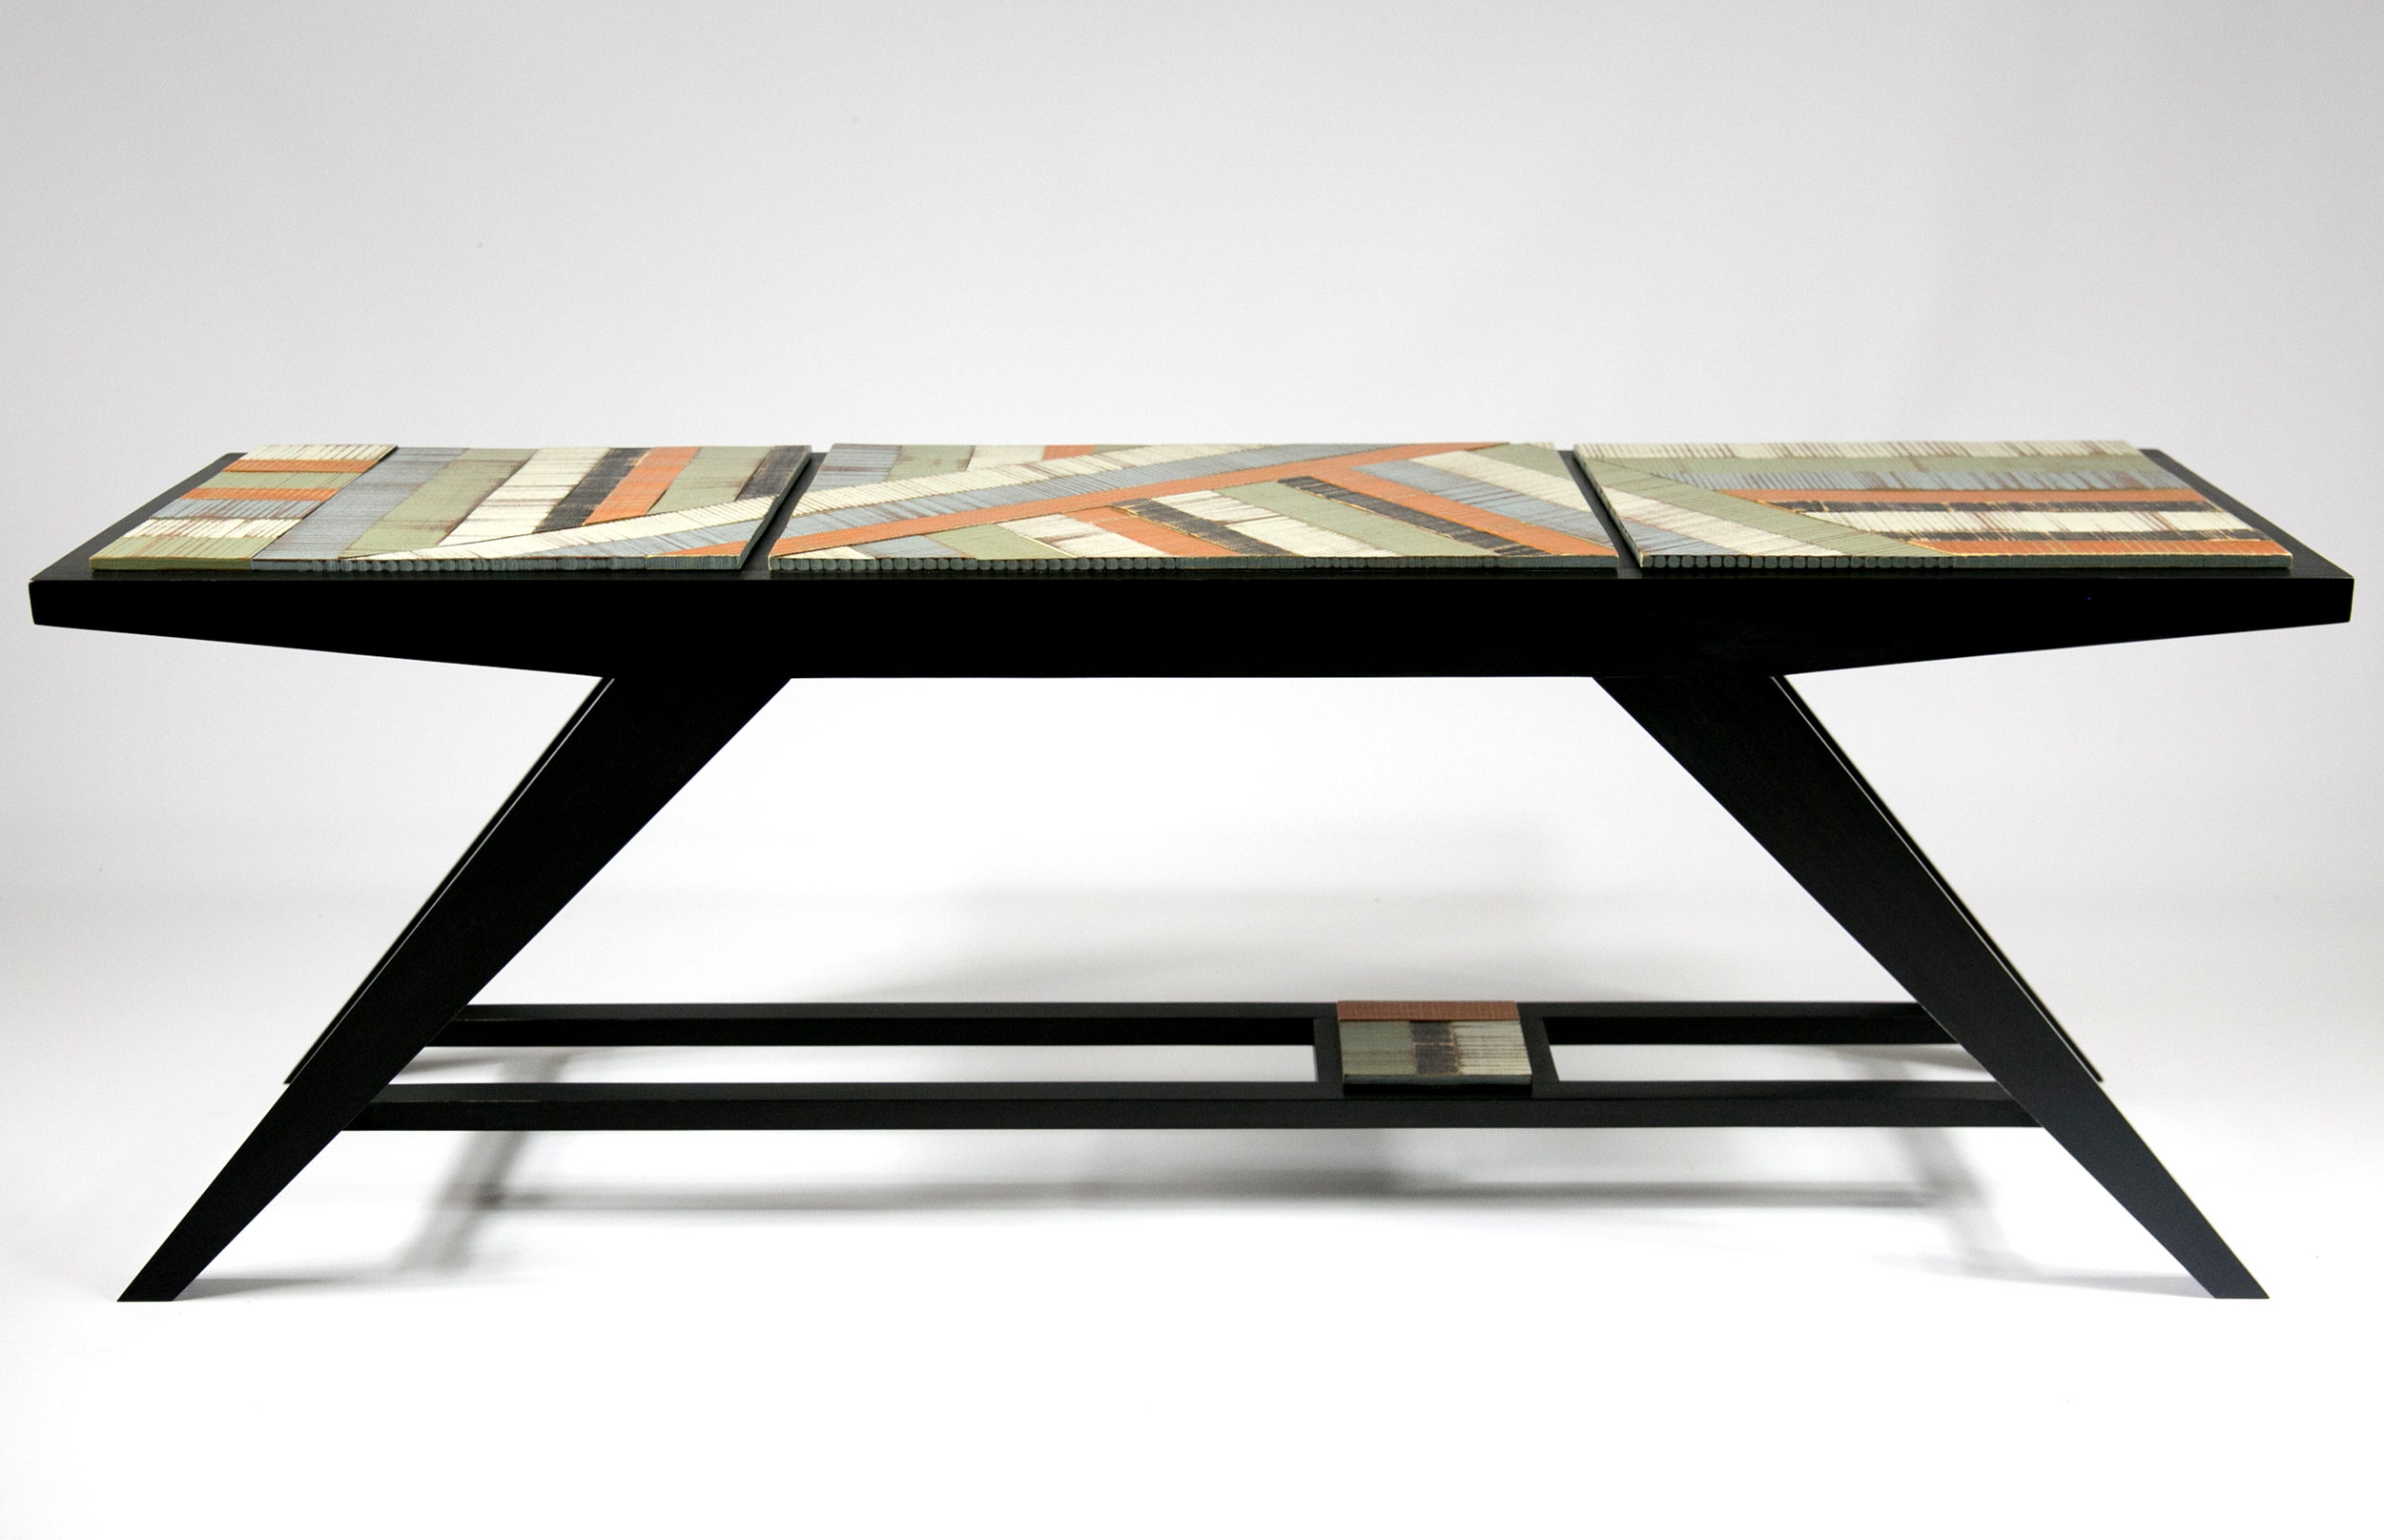 patterned - a bench